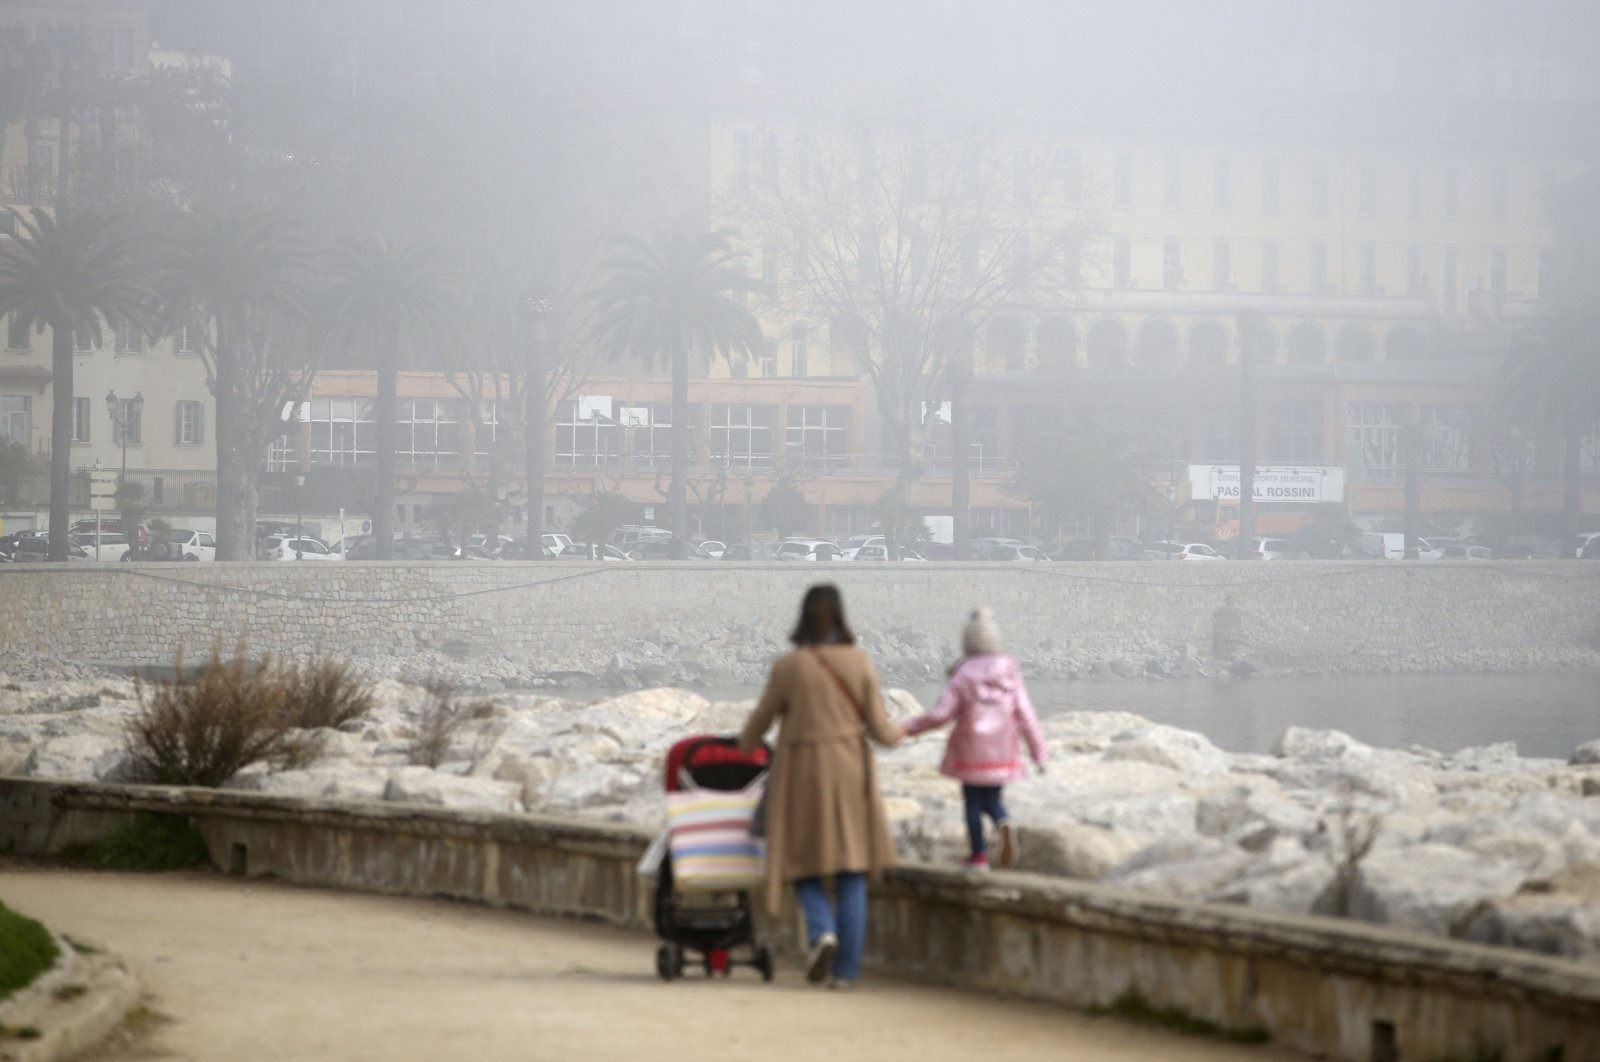 A woman walks with her child at the Miot square as heavy smog and pollution envelopes the capital Ajaccio on the French Mediterranean island of Corsica on Feb. 25, 2021. (AFP Photo)